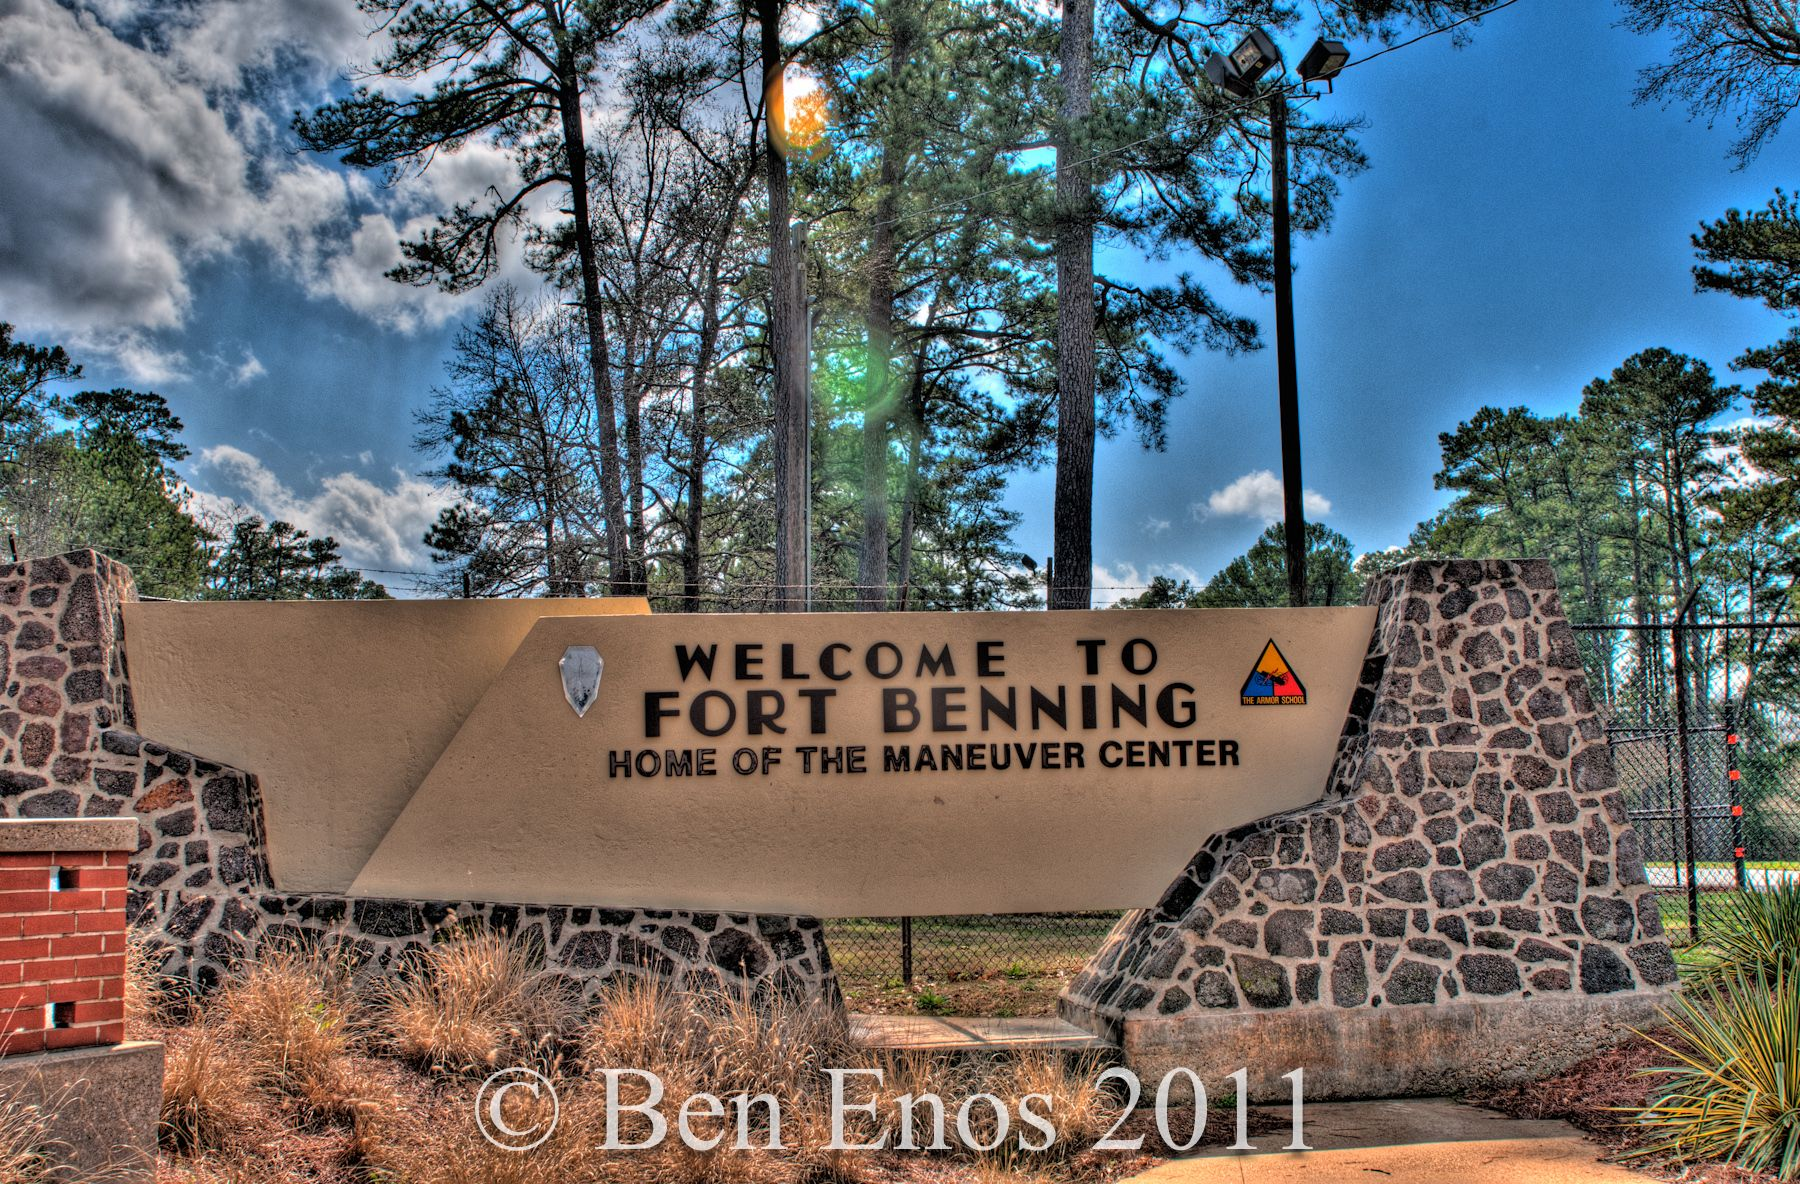 fort benning chat High-speed internet services in fort benning get at&t internet plans up to 100mbps with equipment included $ 40 /mo when you bundle  so you can video chat with friends and family, work from the home office, or just watch a movie, all with complete confidence in your connection.